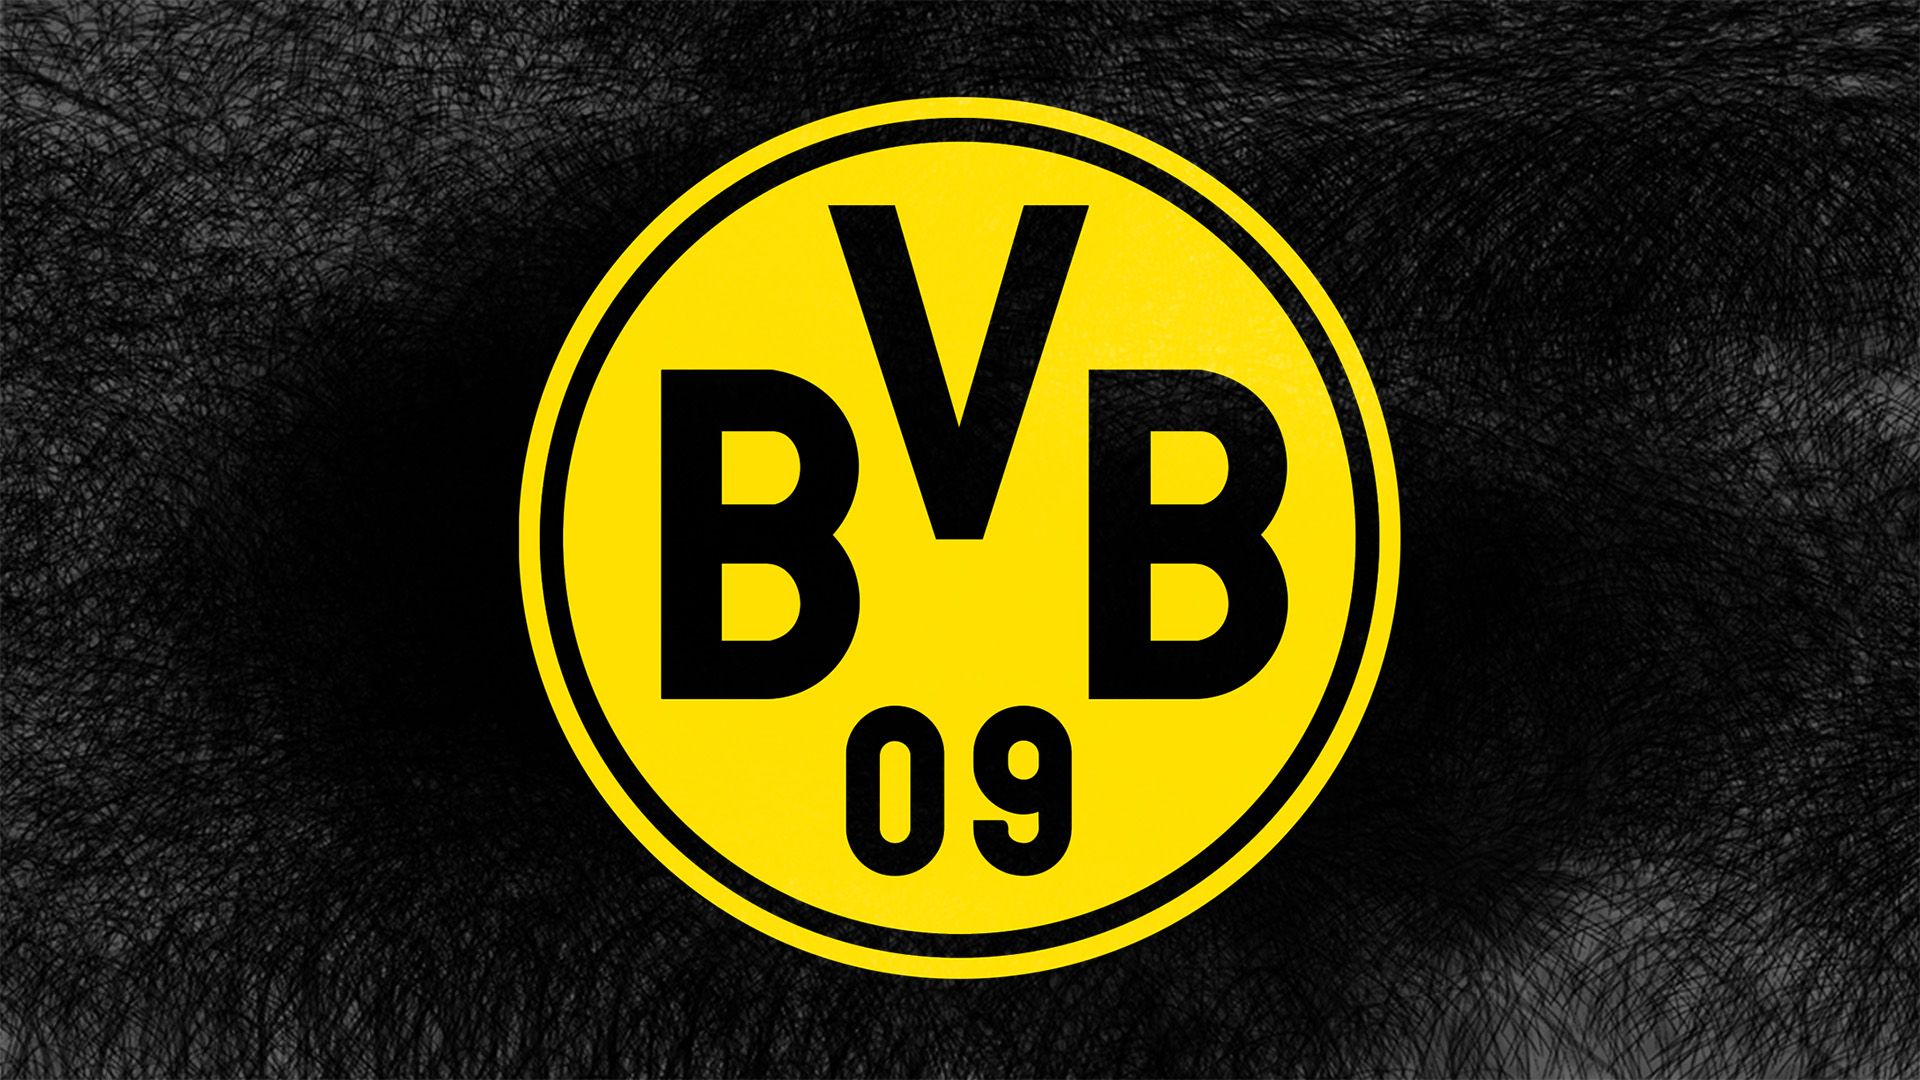 borussia dortmund 013 hintergrundbild whatsapp profilbild. Black Bedroom Furniture Sets. Home Design Ideas